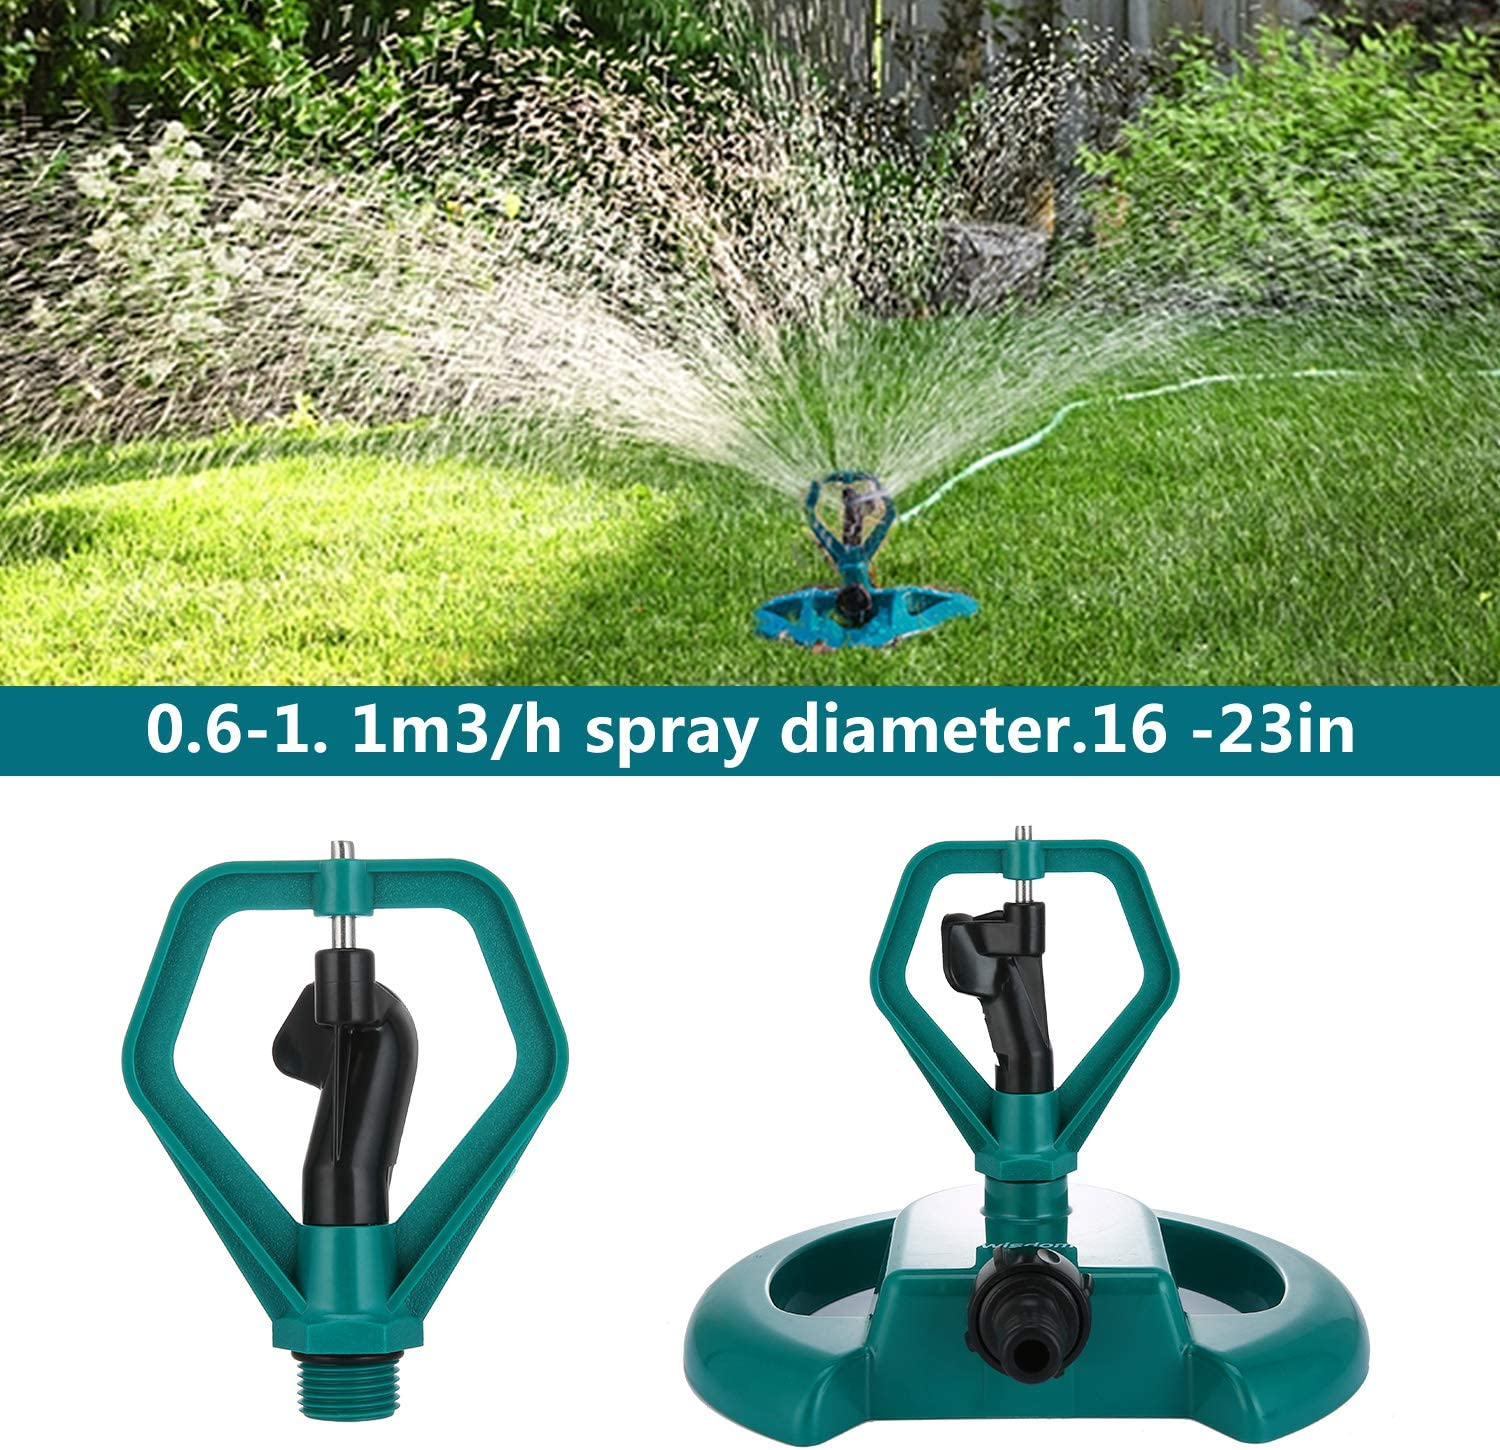 WISDOMWELL Pulsating Long Range Lawn Impact Sprinkler Head With 1//2 Provide 360 /¡/ã watering Of Your Garden/¡/¢farm/¡/¢nursery and more(2 Sprinkler Head)